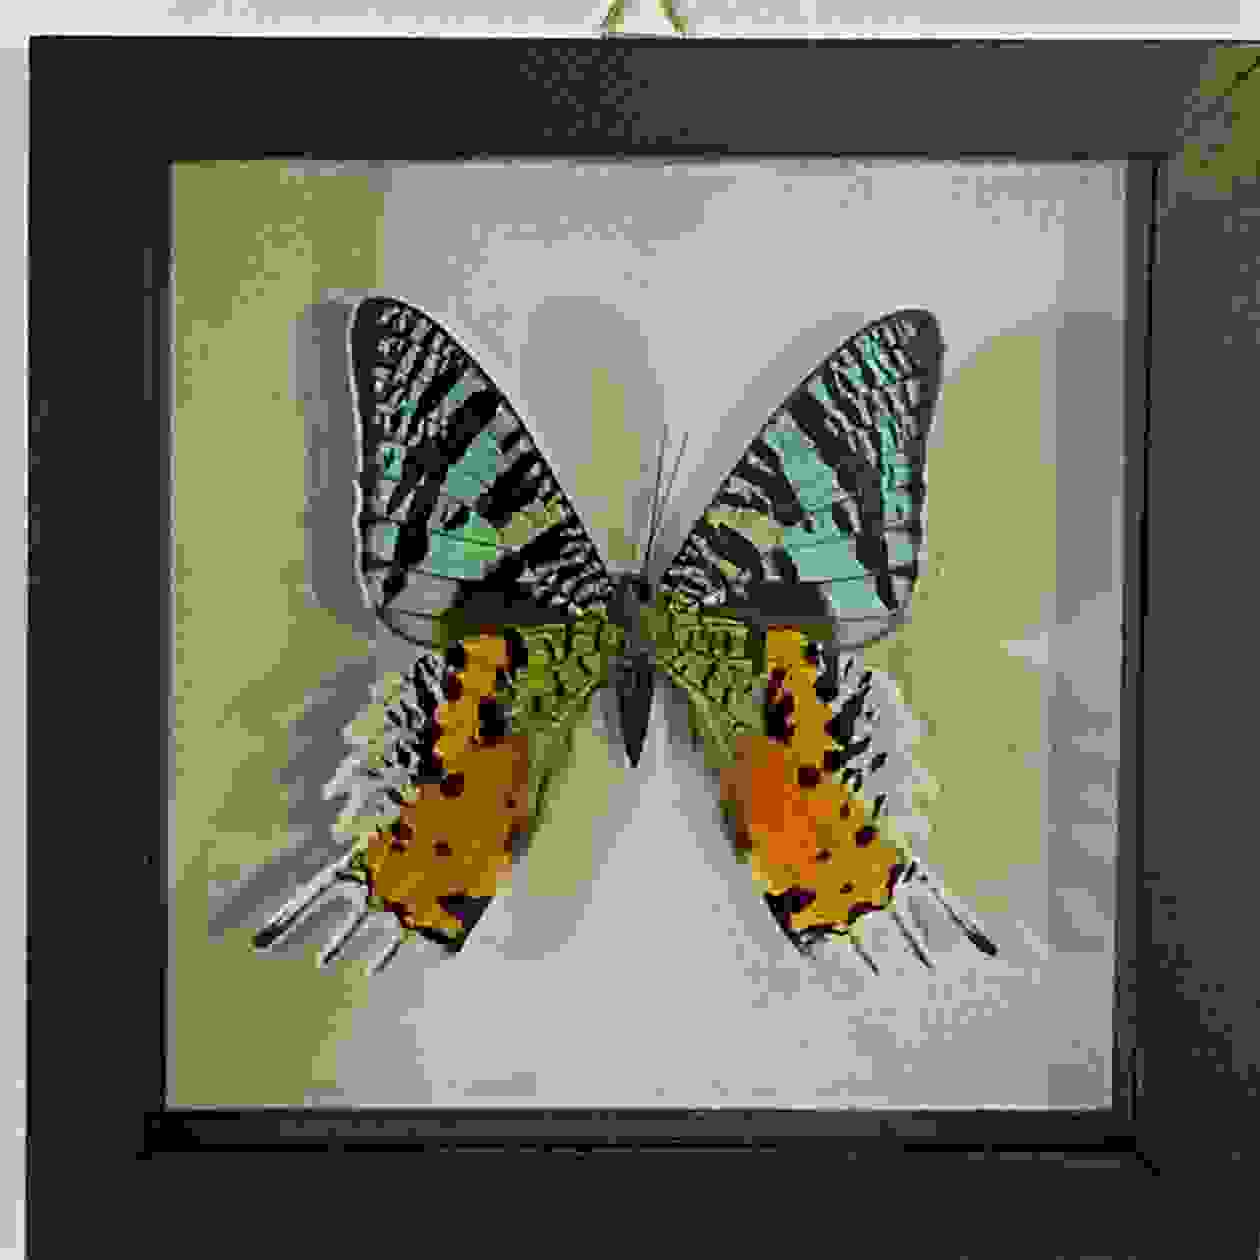 Rainbow moth butterfly in frame